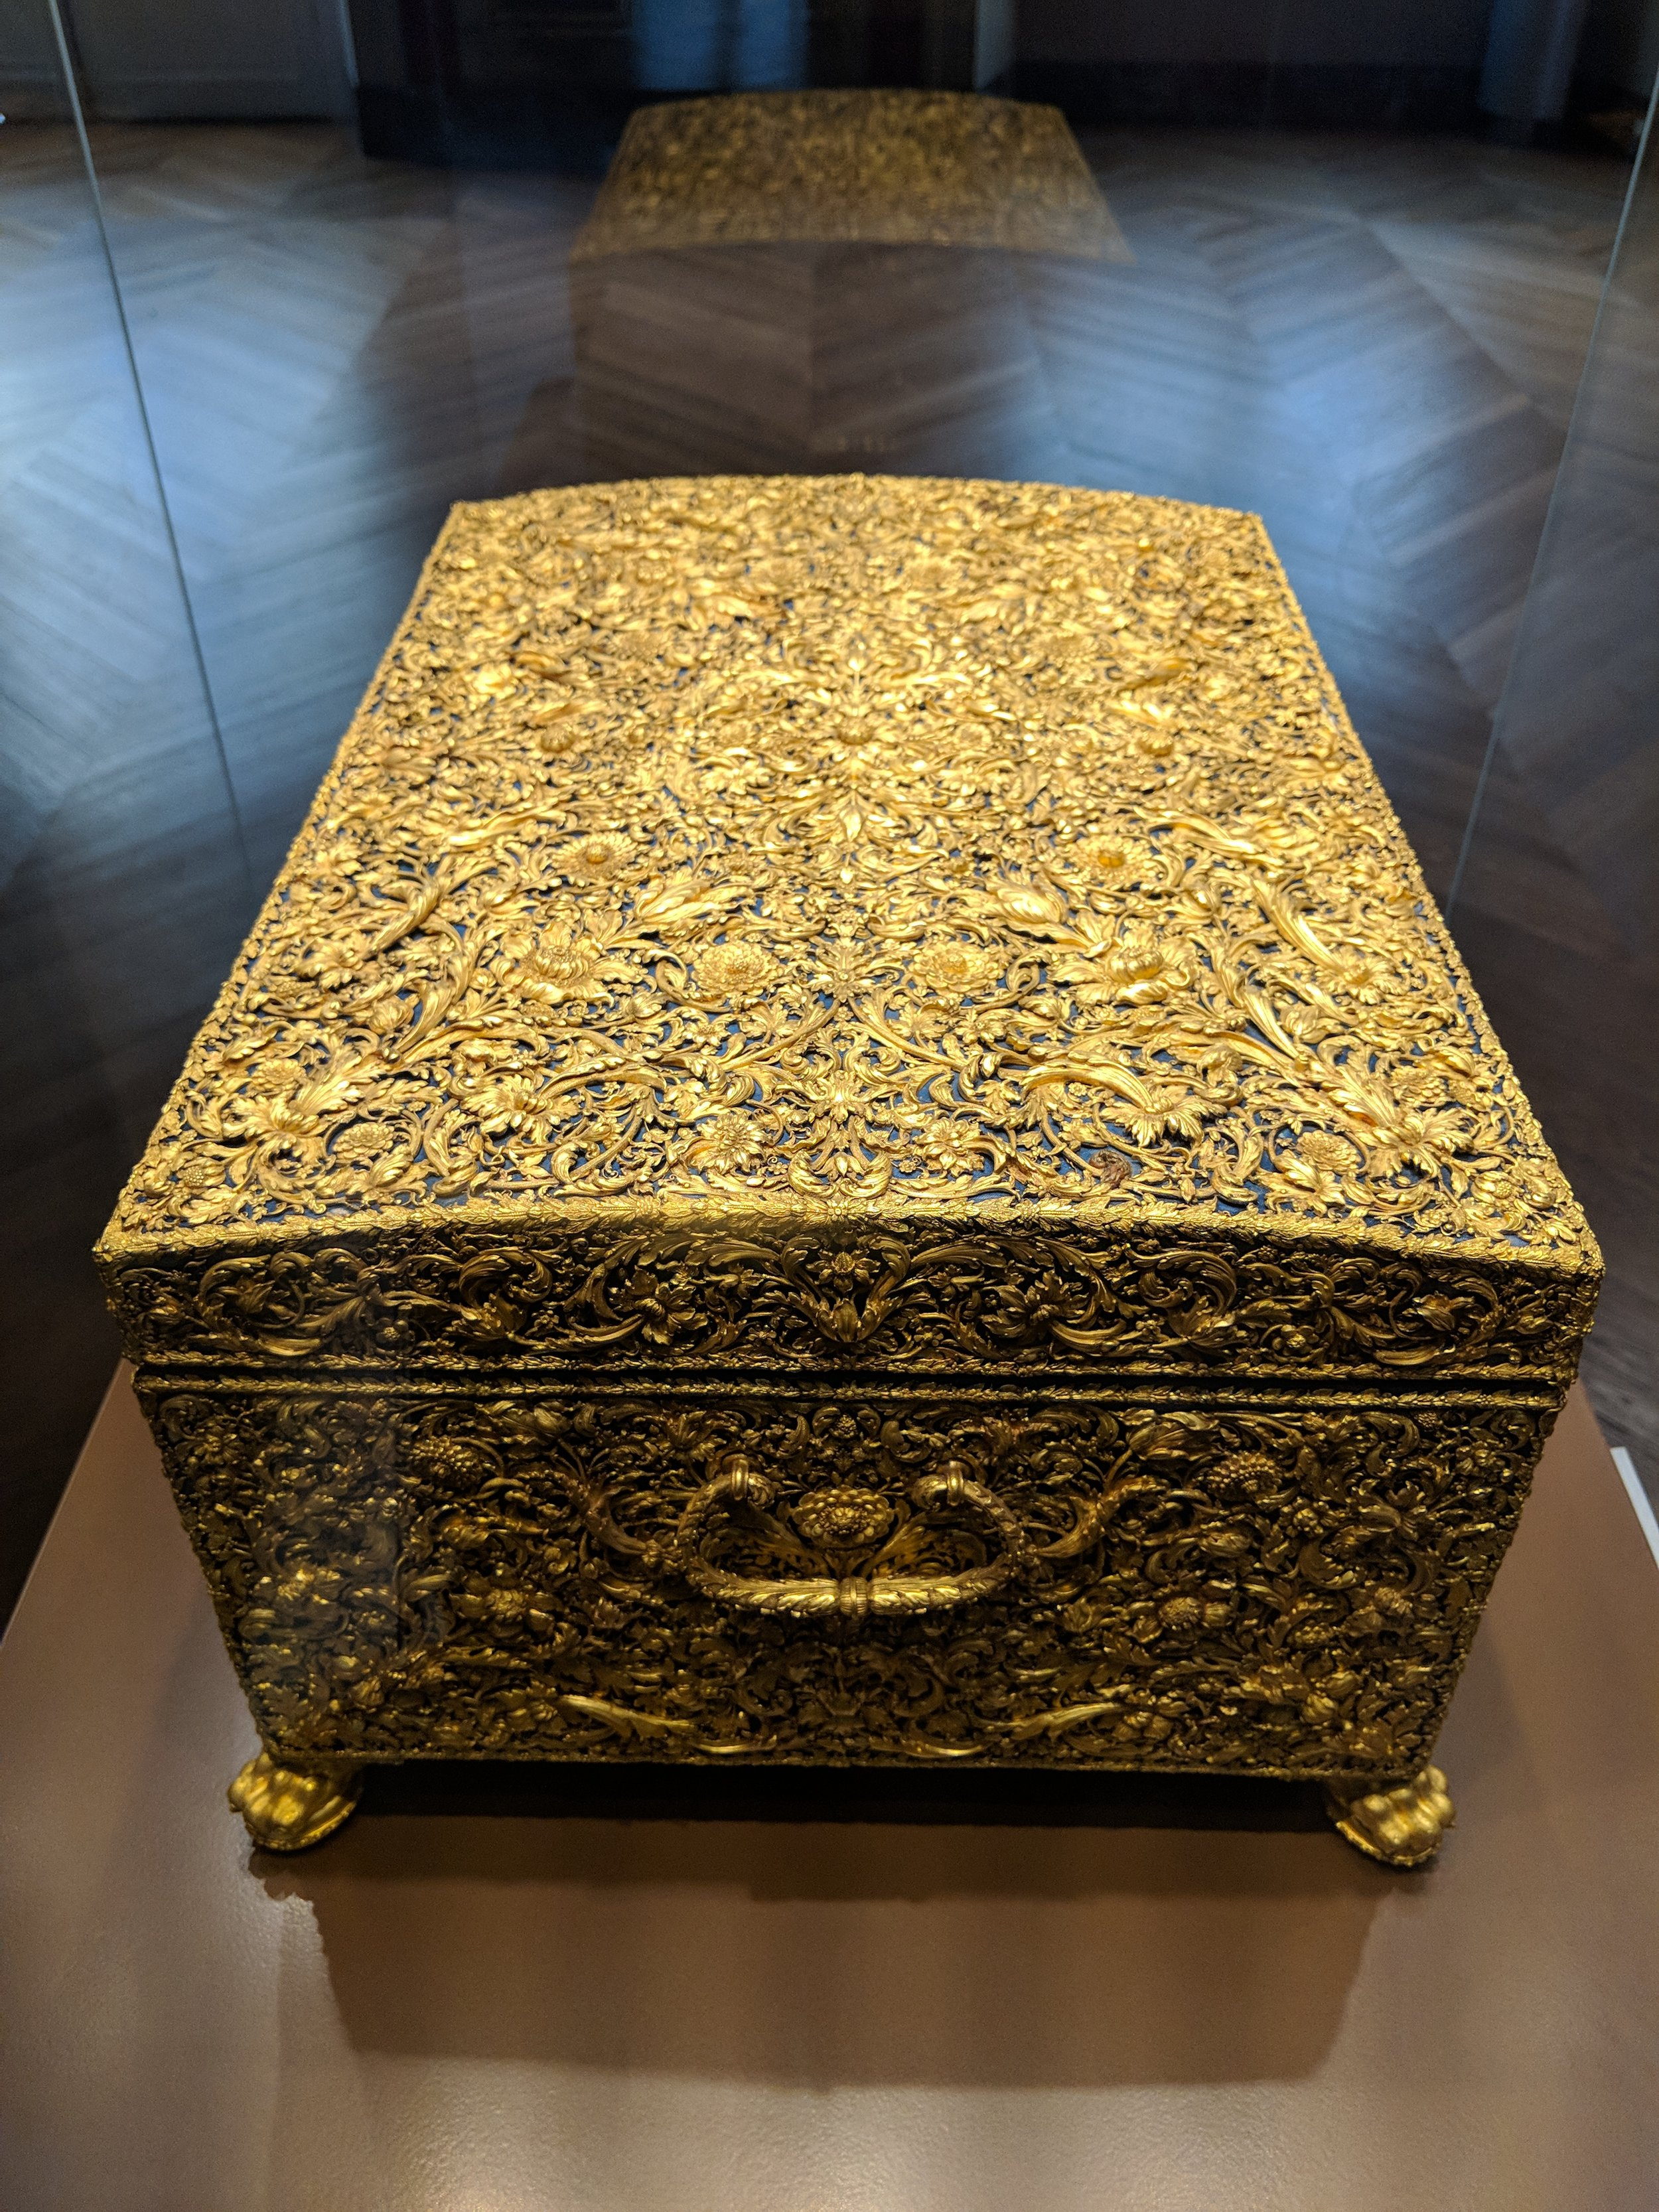 Then there was this golden treasure chest because someone wanted to make a really beautiful chest and someone could appreciate this way back then.